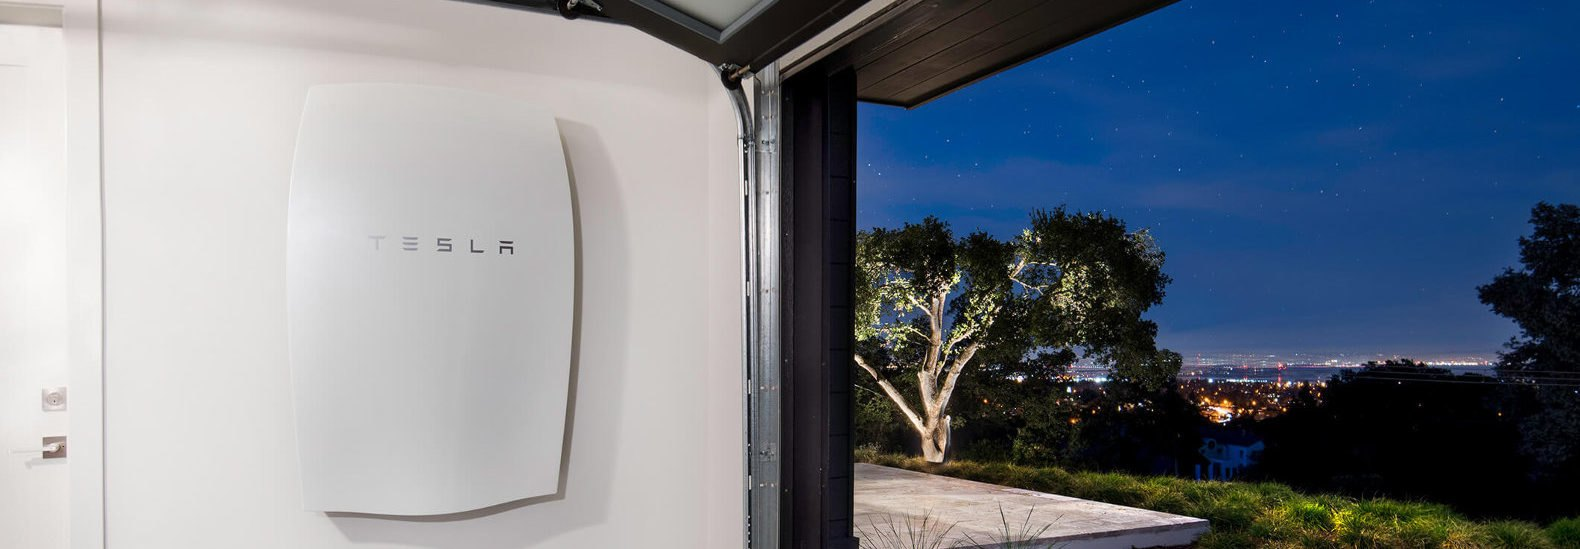 Solarcity Roof Tiles >> Elon Musk plans to launch Tesla/SolarCity solar roof and Powerwall 2.0 on October 28